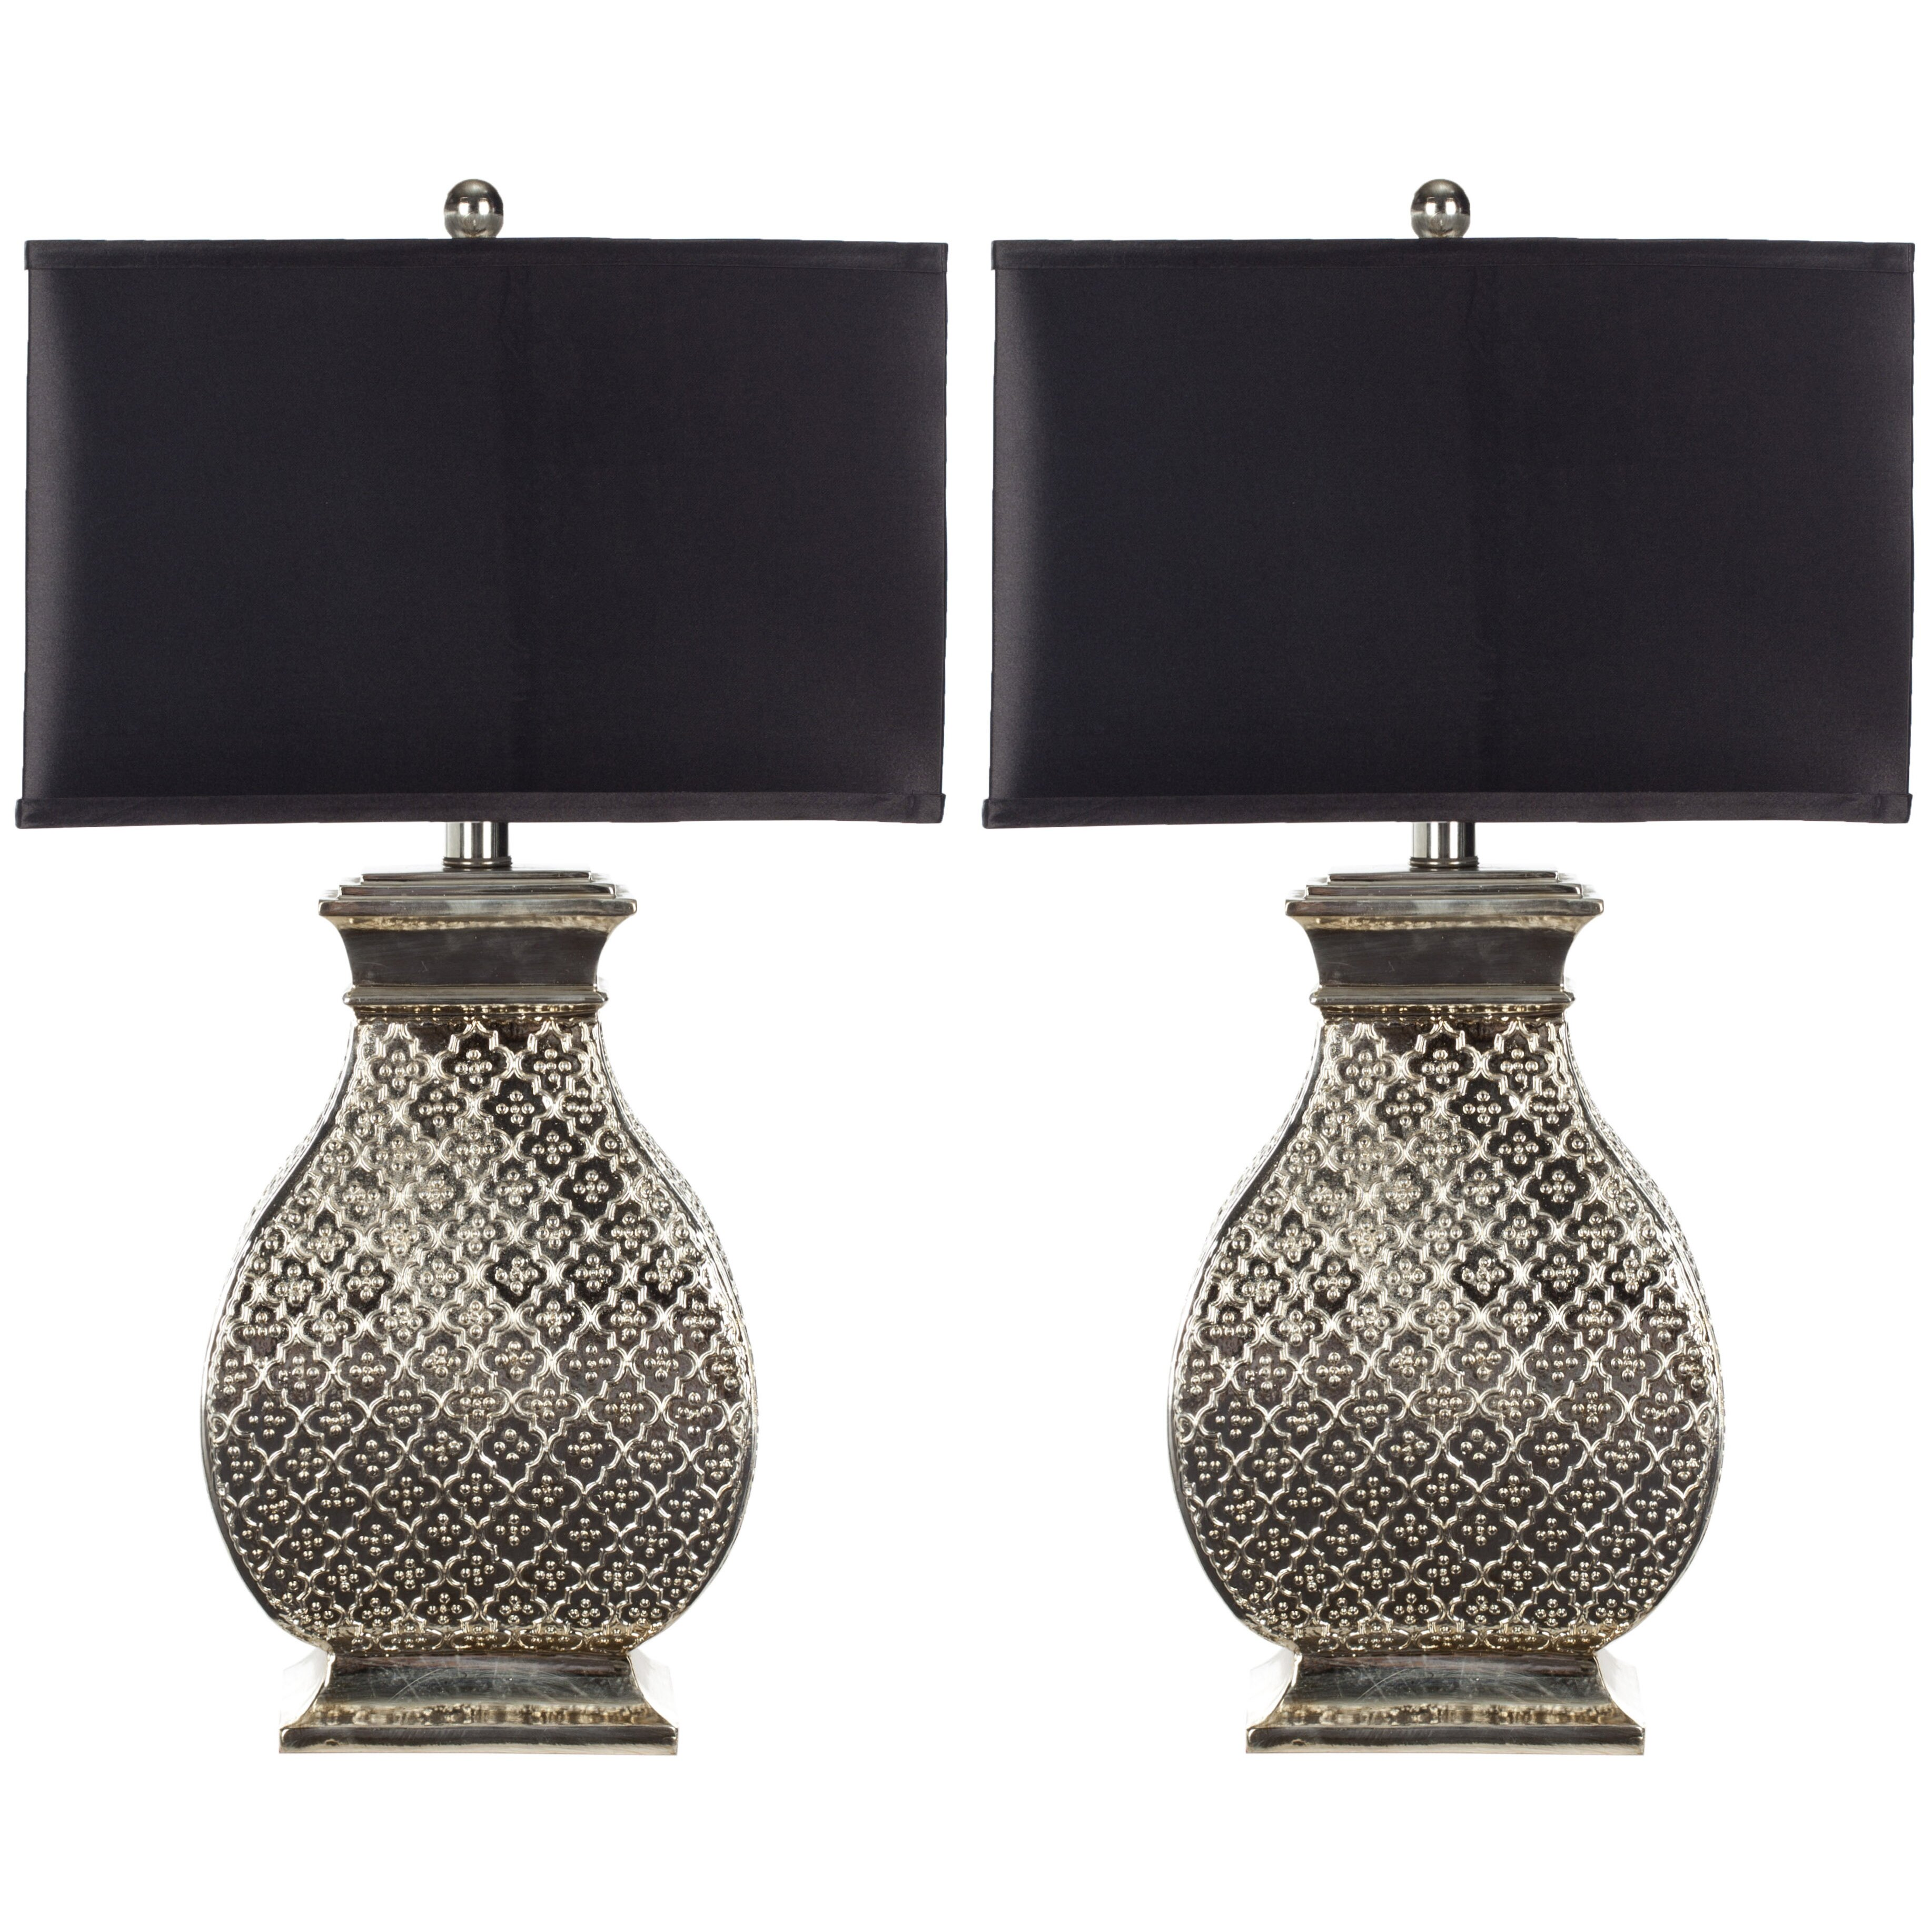 light 30 h table lamp with rectangular shade by safavieh. Black Bedroom Furniture Sets. Home Design Ideas